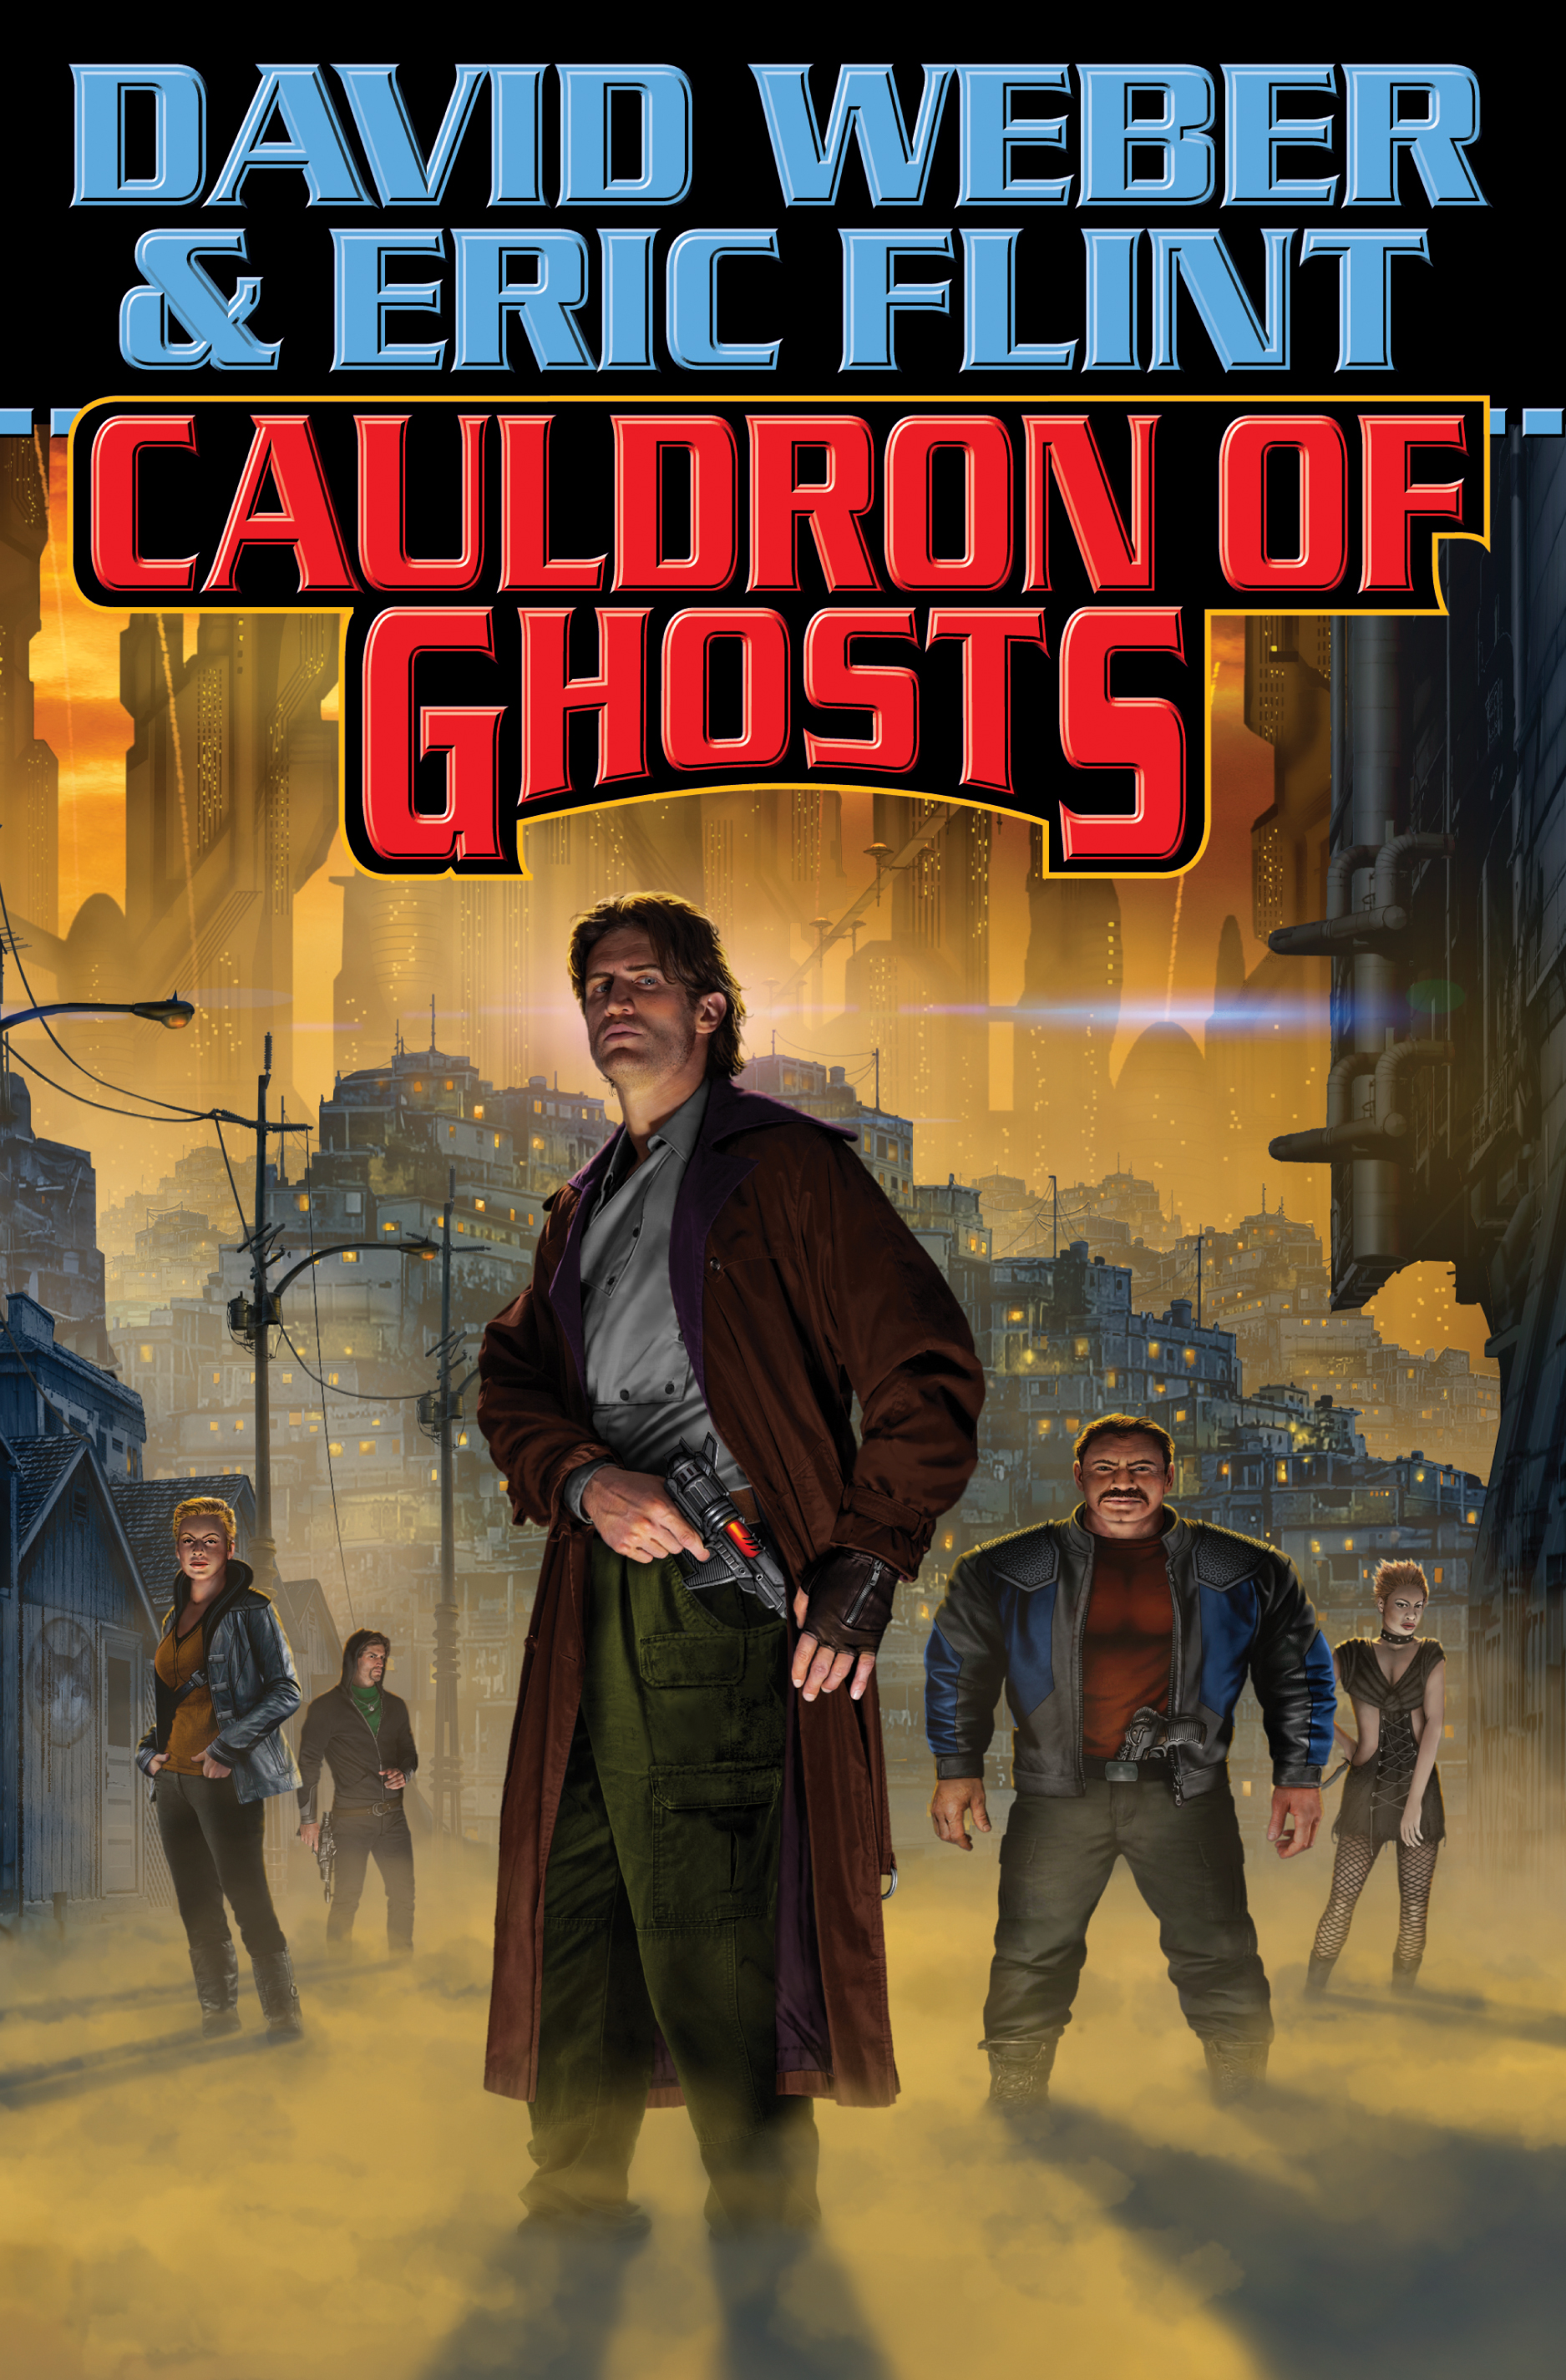 Cauldron-of-ghosts-9781476736334_hr